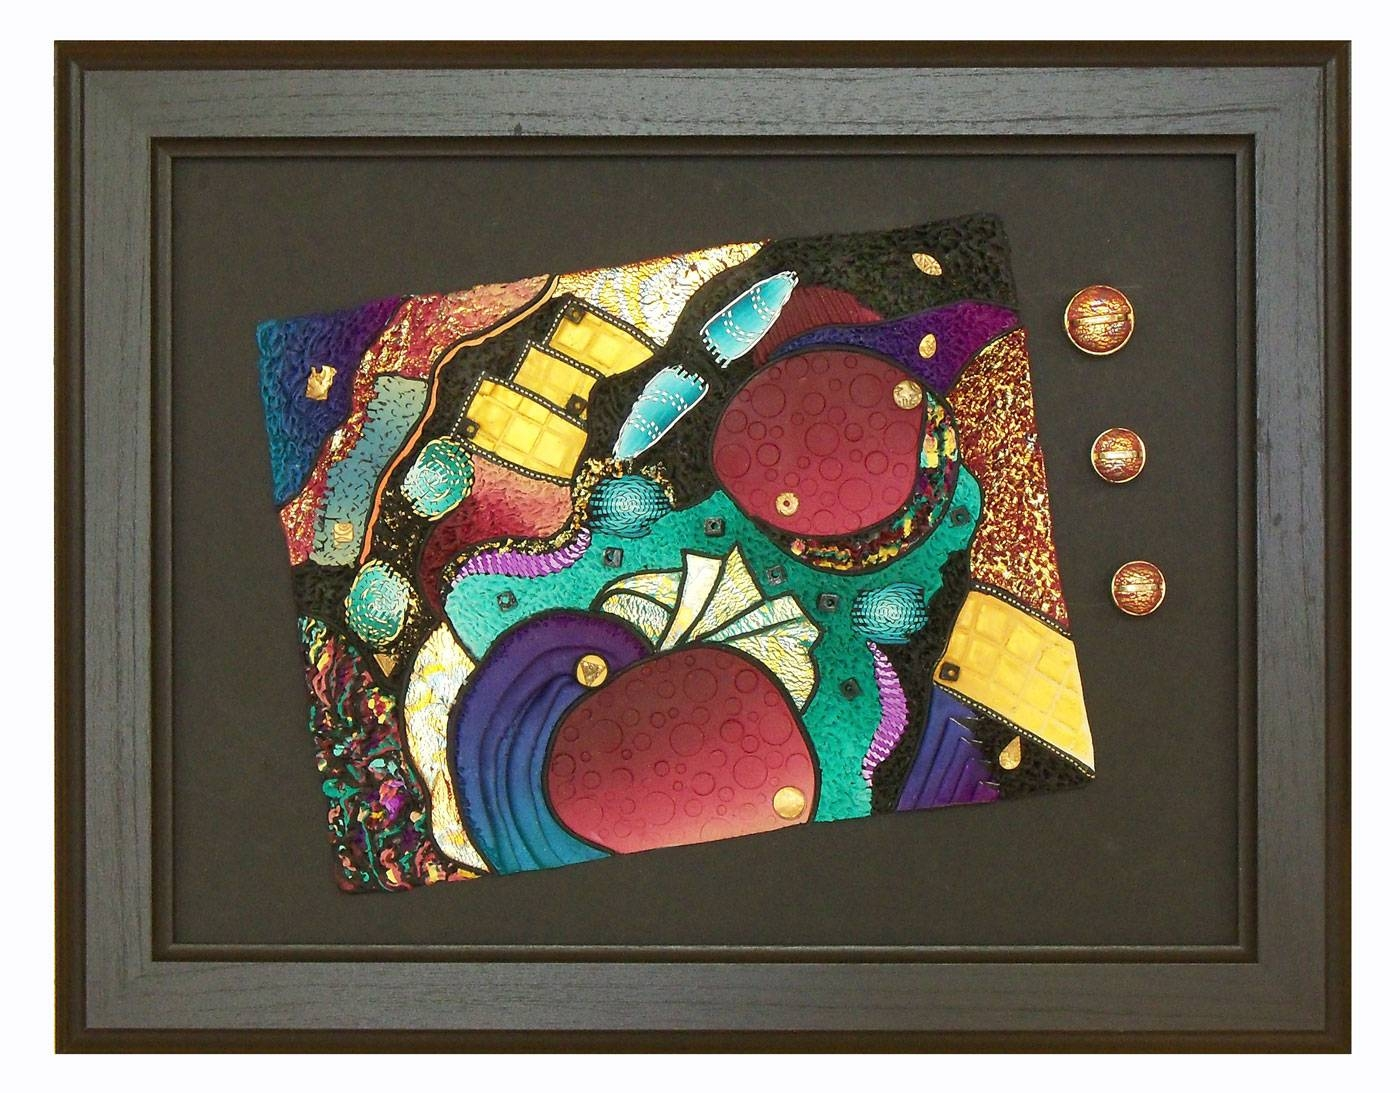 Other World – Polymer Clay Wall Art « Polymer Clay Etc. With Regard To 2017 Polymer Clay Wall Art (Gallery 2 of 20)